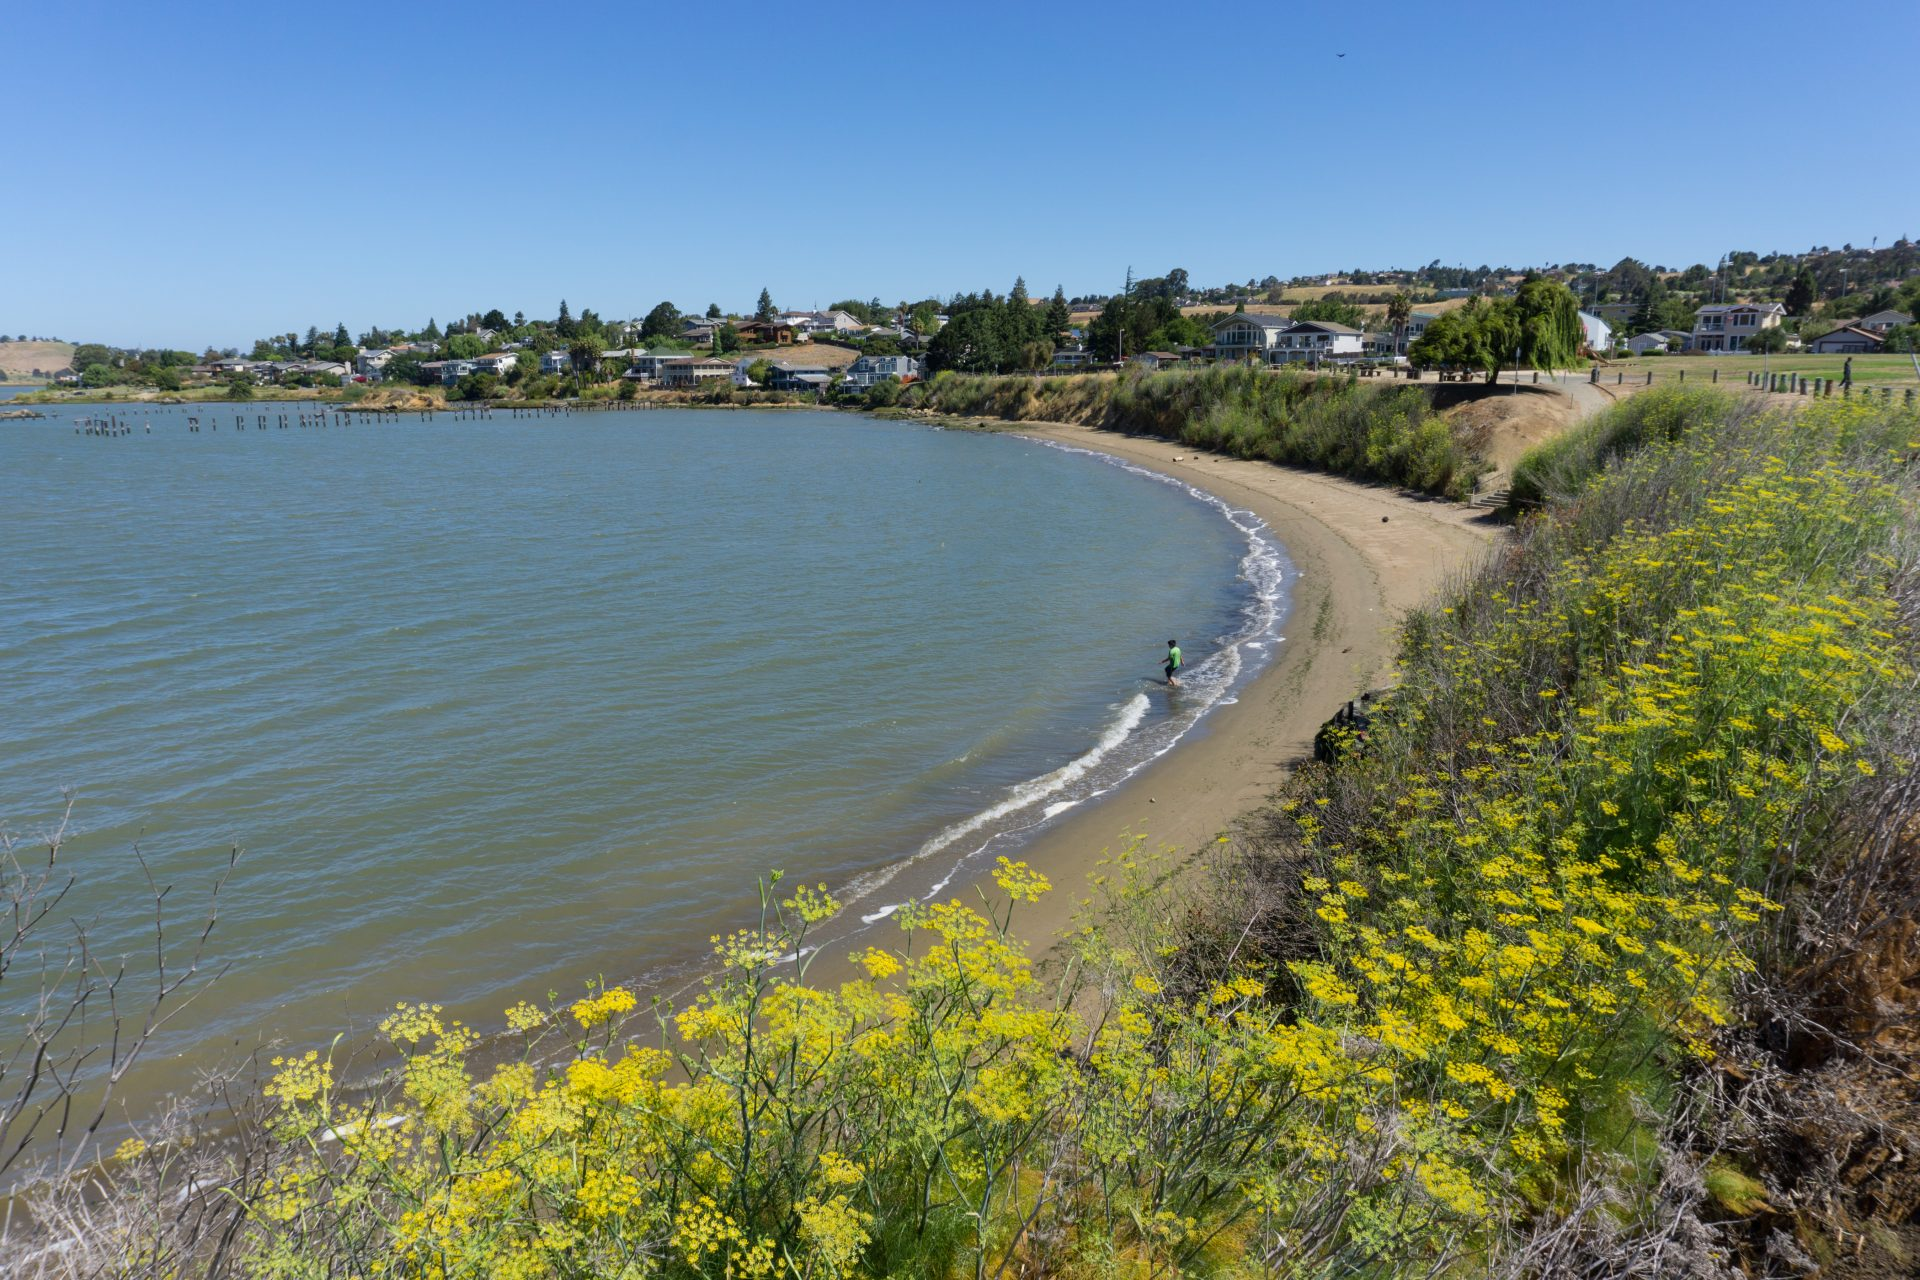 yelow flowers foreground, one person on sandy beach mmiddle, houses and hills in distance